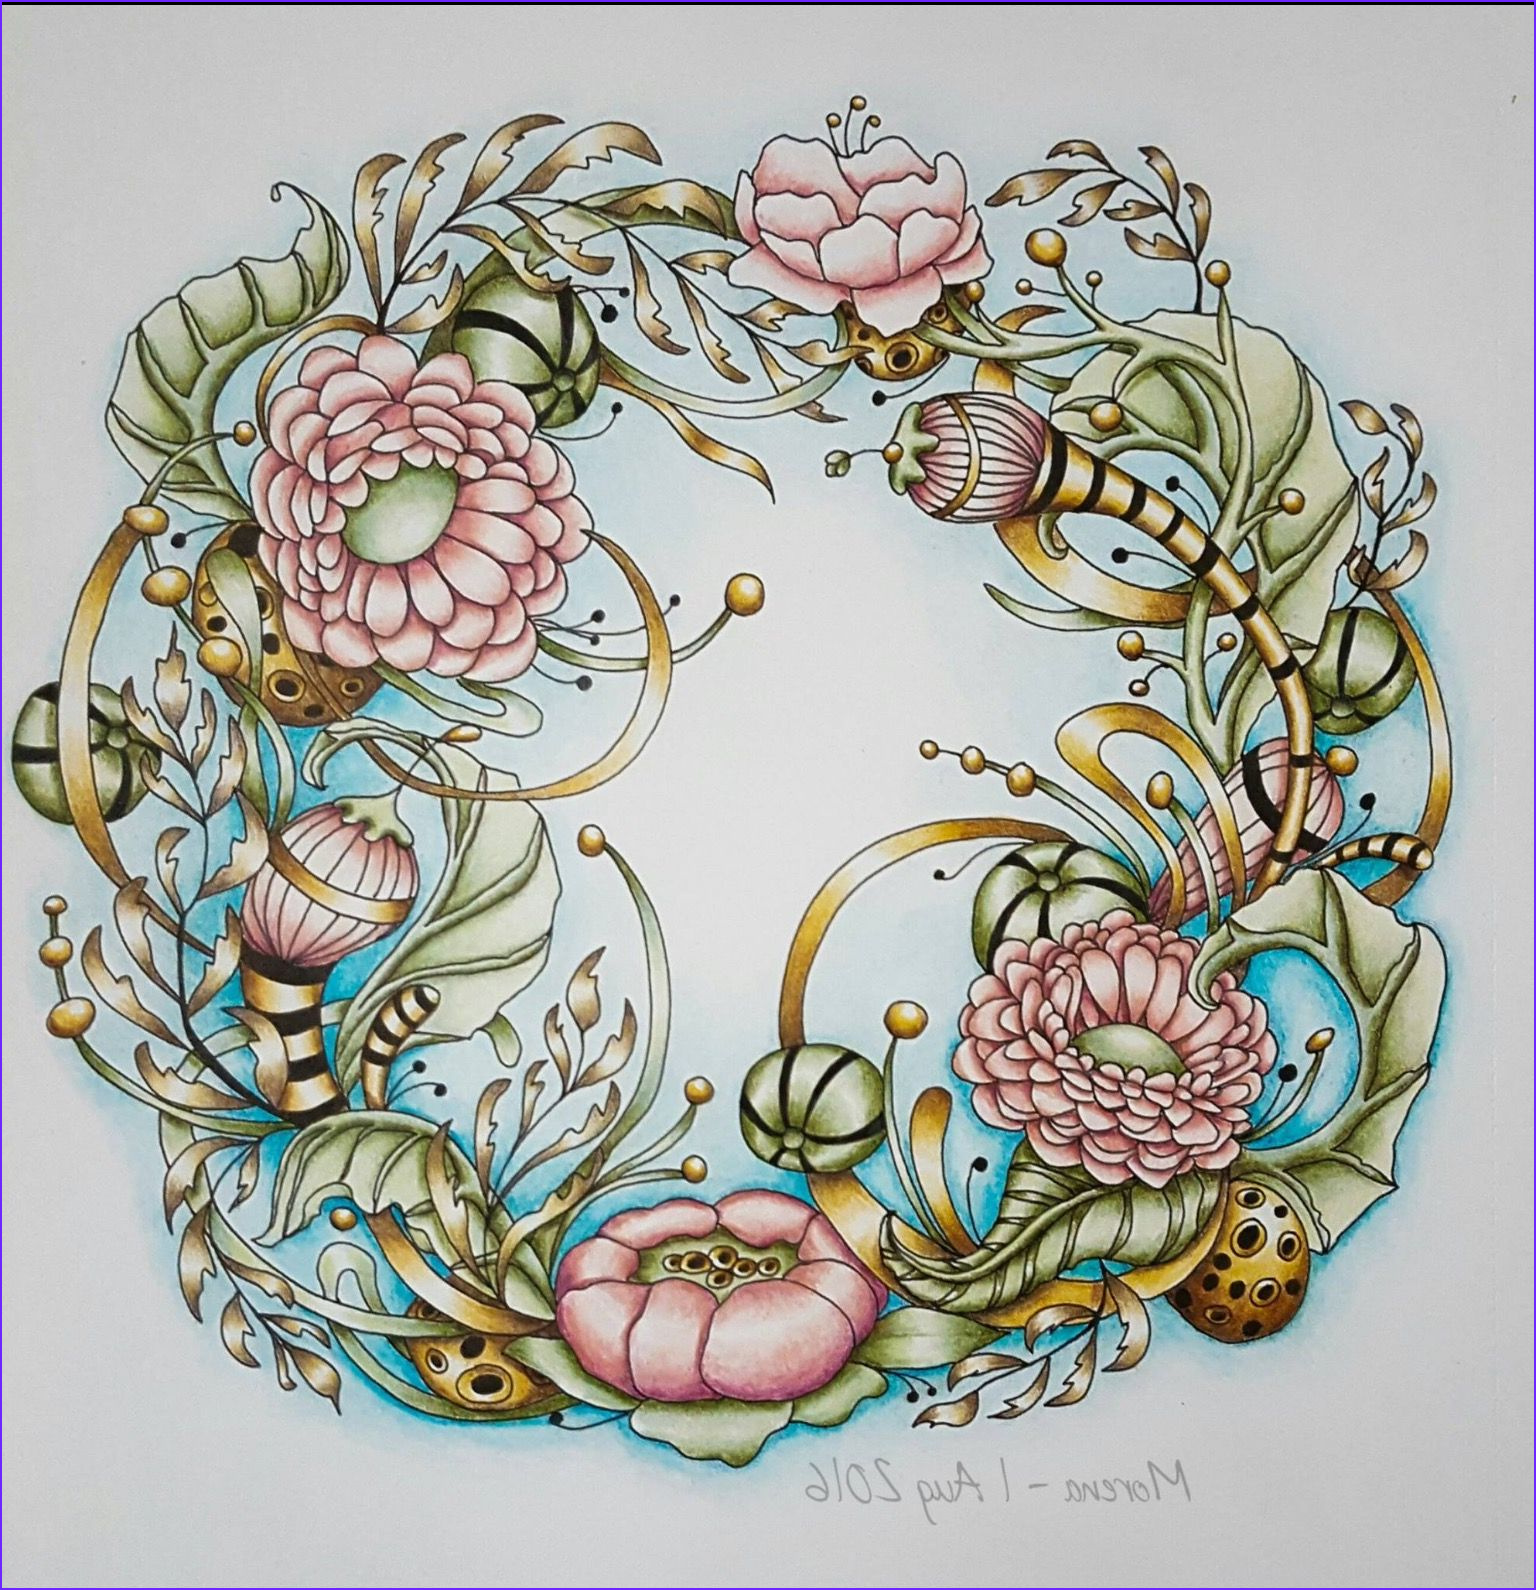 Secret Garden Coloring Page Finished Inspirational Images Pin by June Taylor On Likes 2